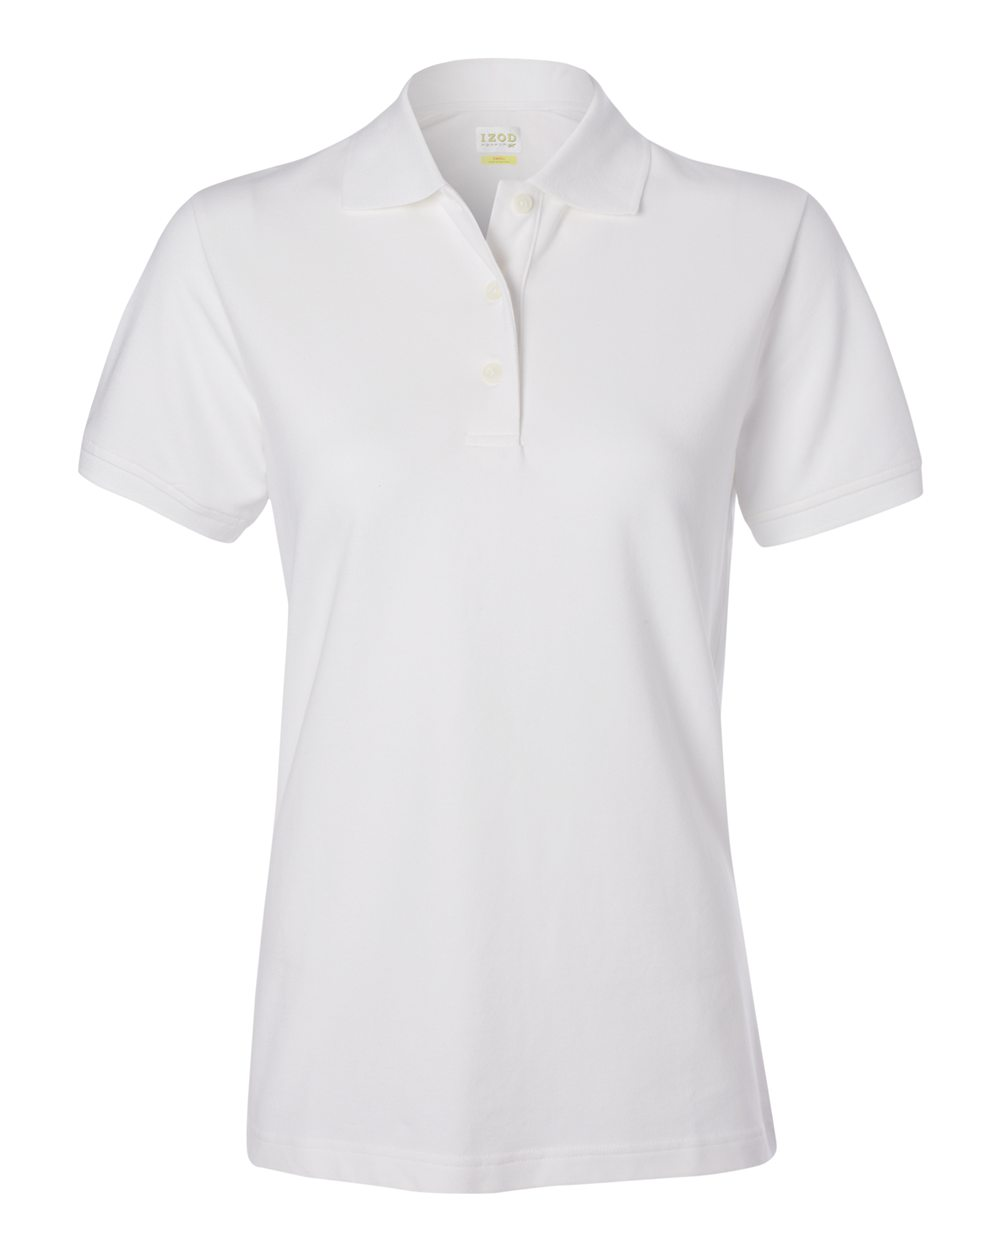 Izod women 39 s original silk wash pique polo 13z0063 for Woman s polo shirts